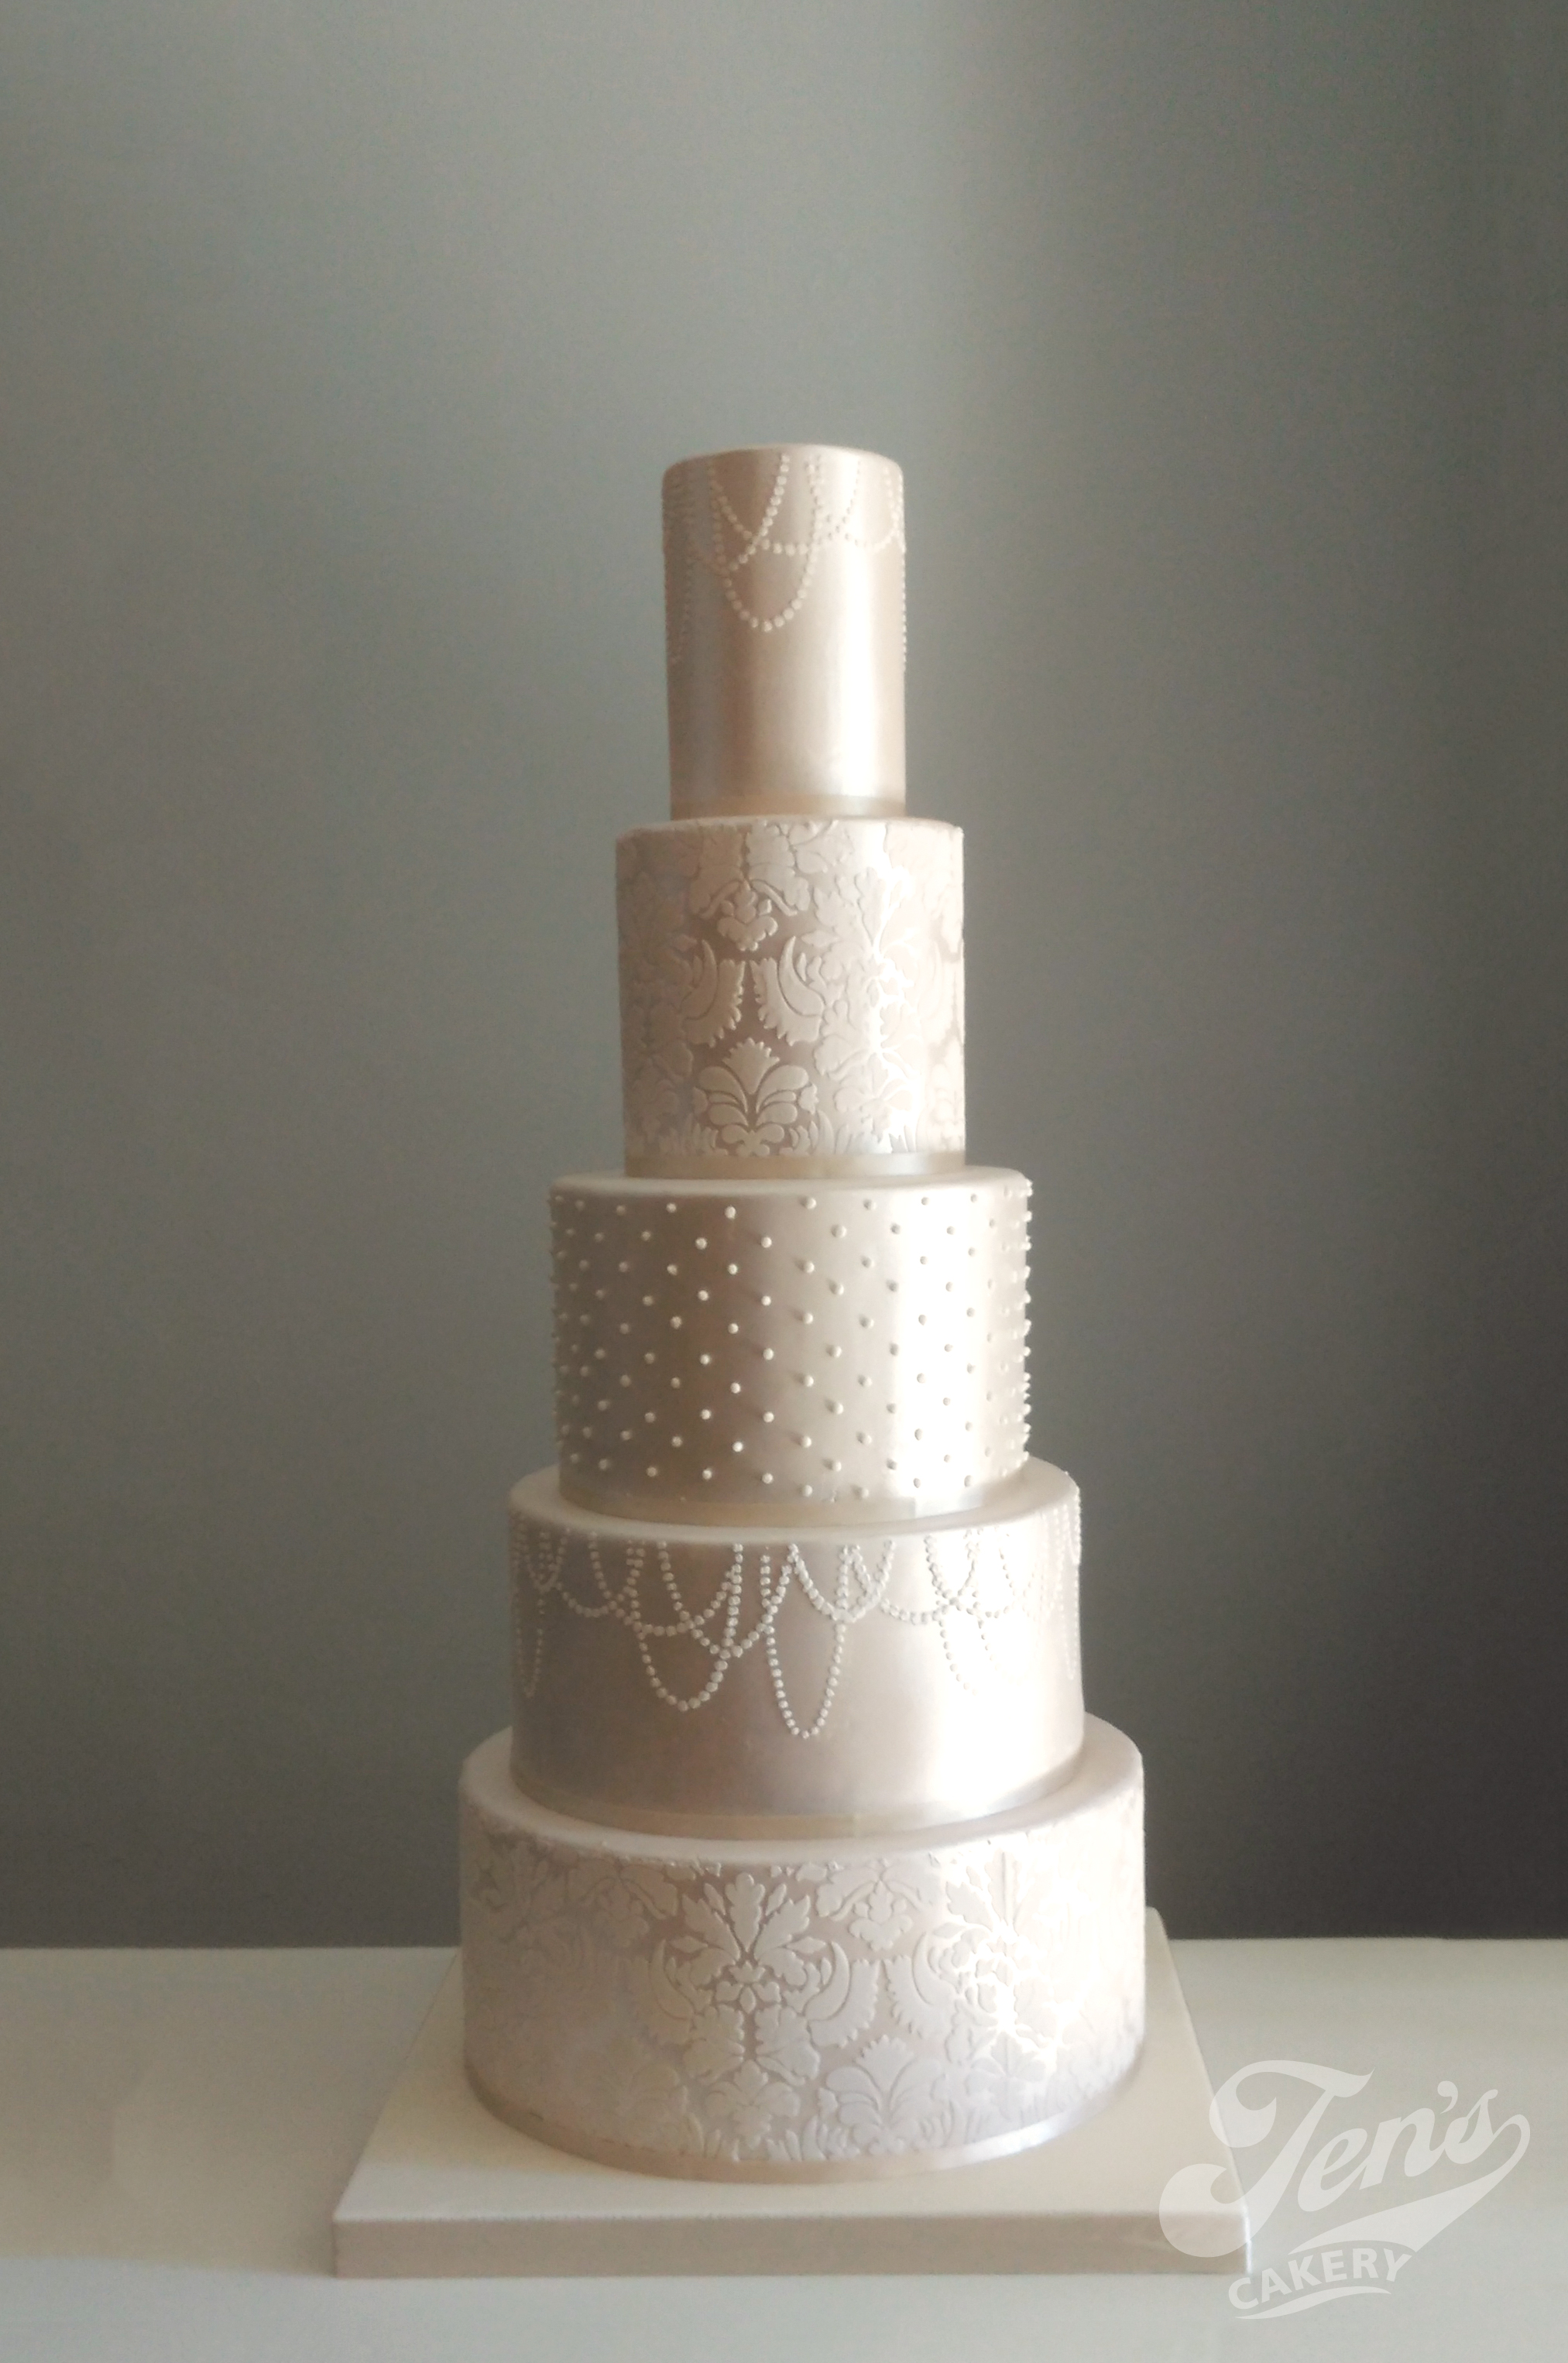 Satin wedding cake with extra deep tiers, lace and pearl finish. A tall cake with 5 tiers at the Langham in Central London.